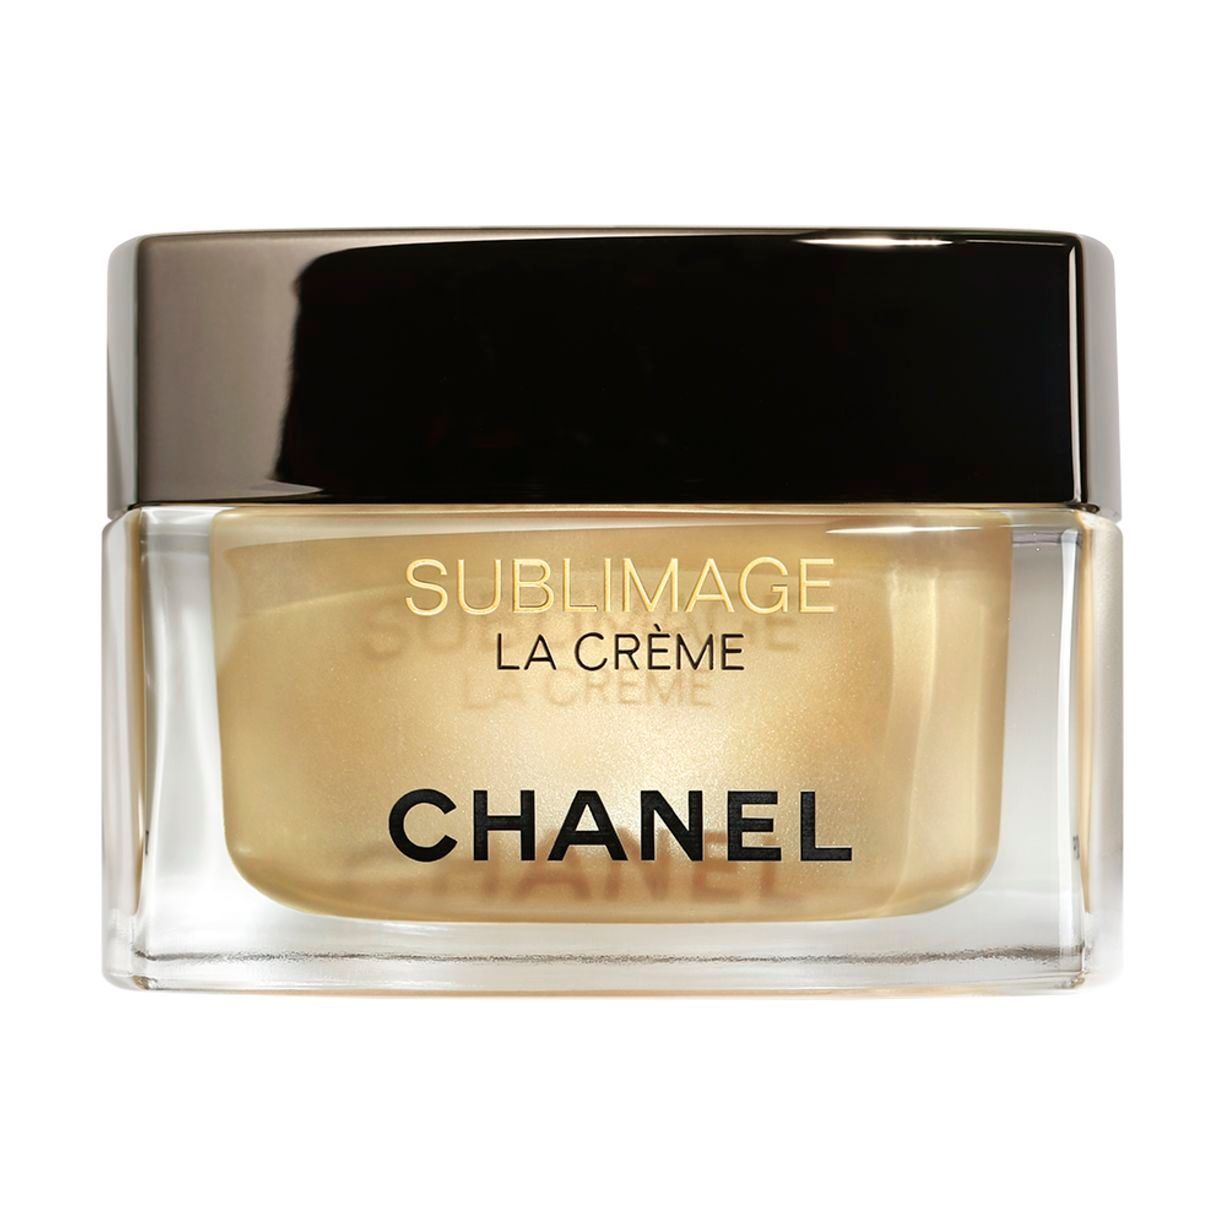 SUBLIMAGE LA CRÈME ULTIMATE SKIN REVITALISATION 50g